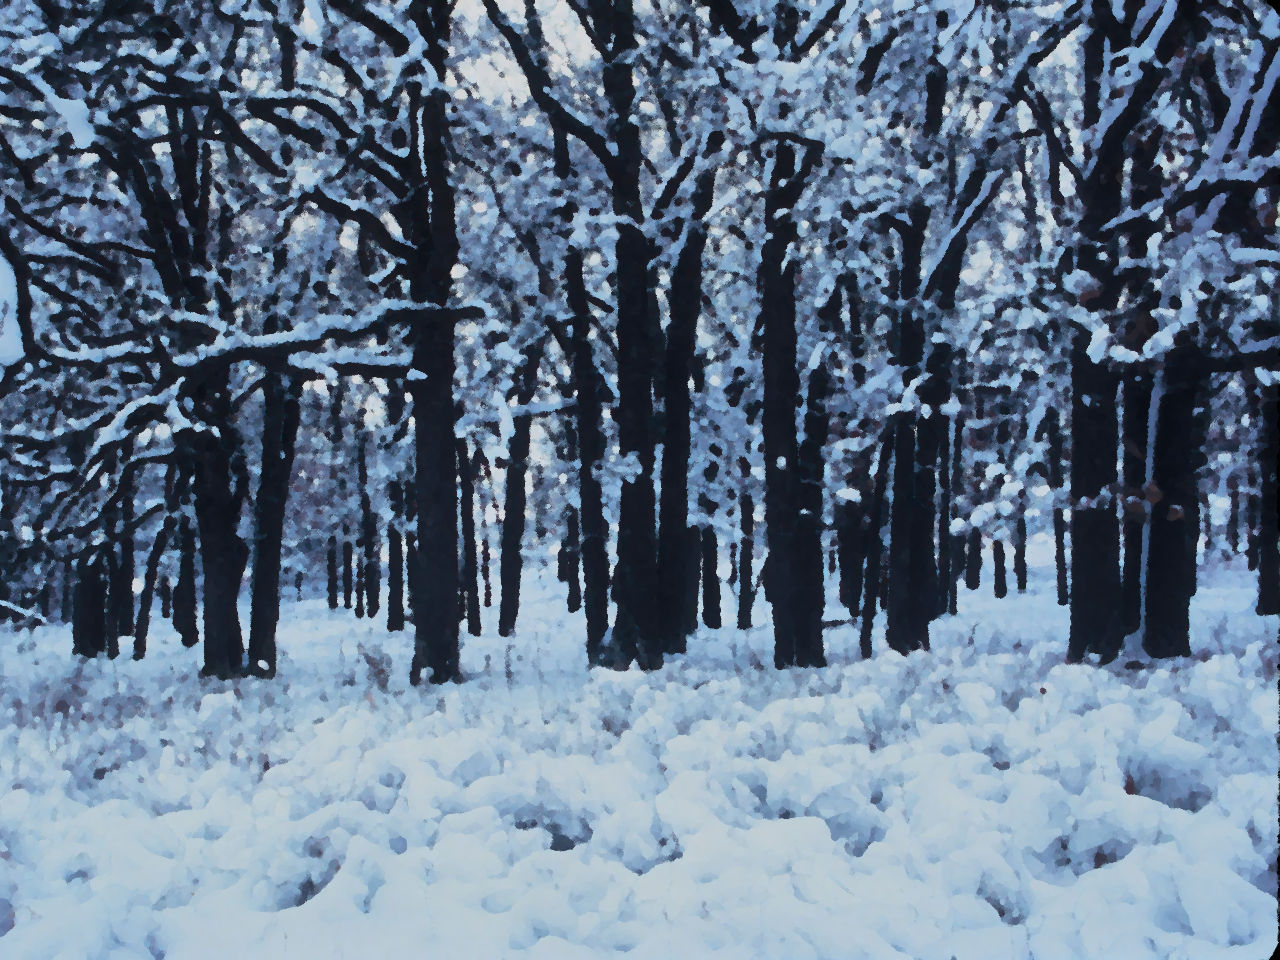 winter trees painting background image wallpaper or